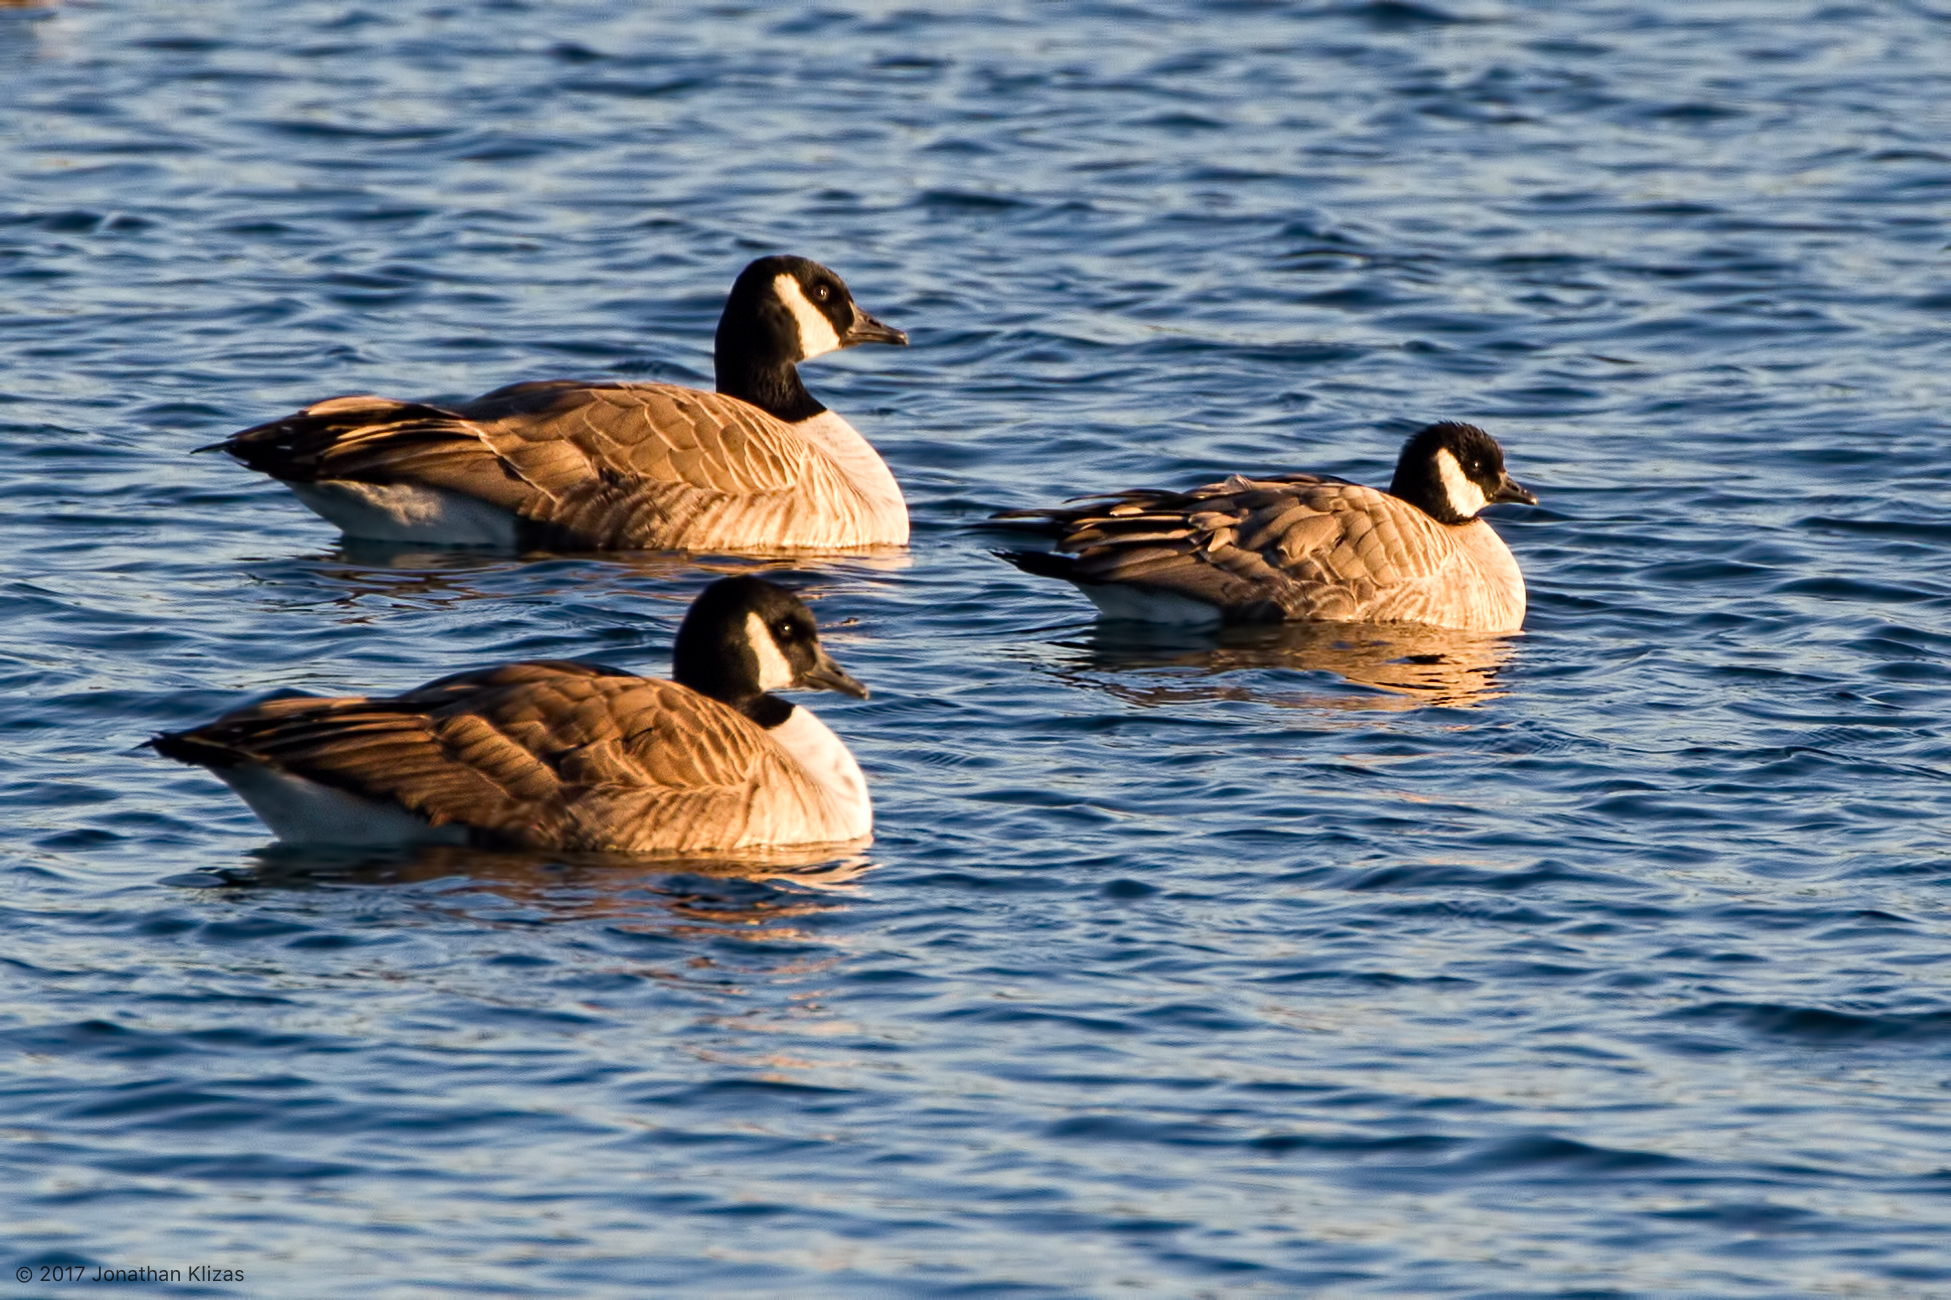 Cackling Goose with Canada Geese, Lake Parsippany, NJ, Nov  24, 2